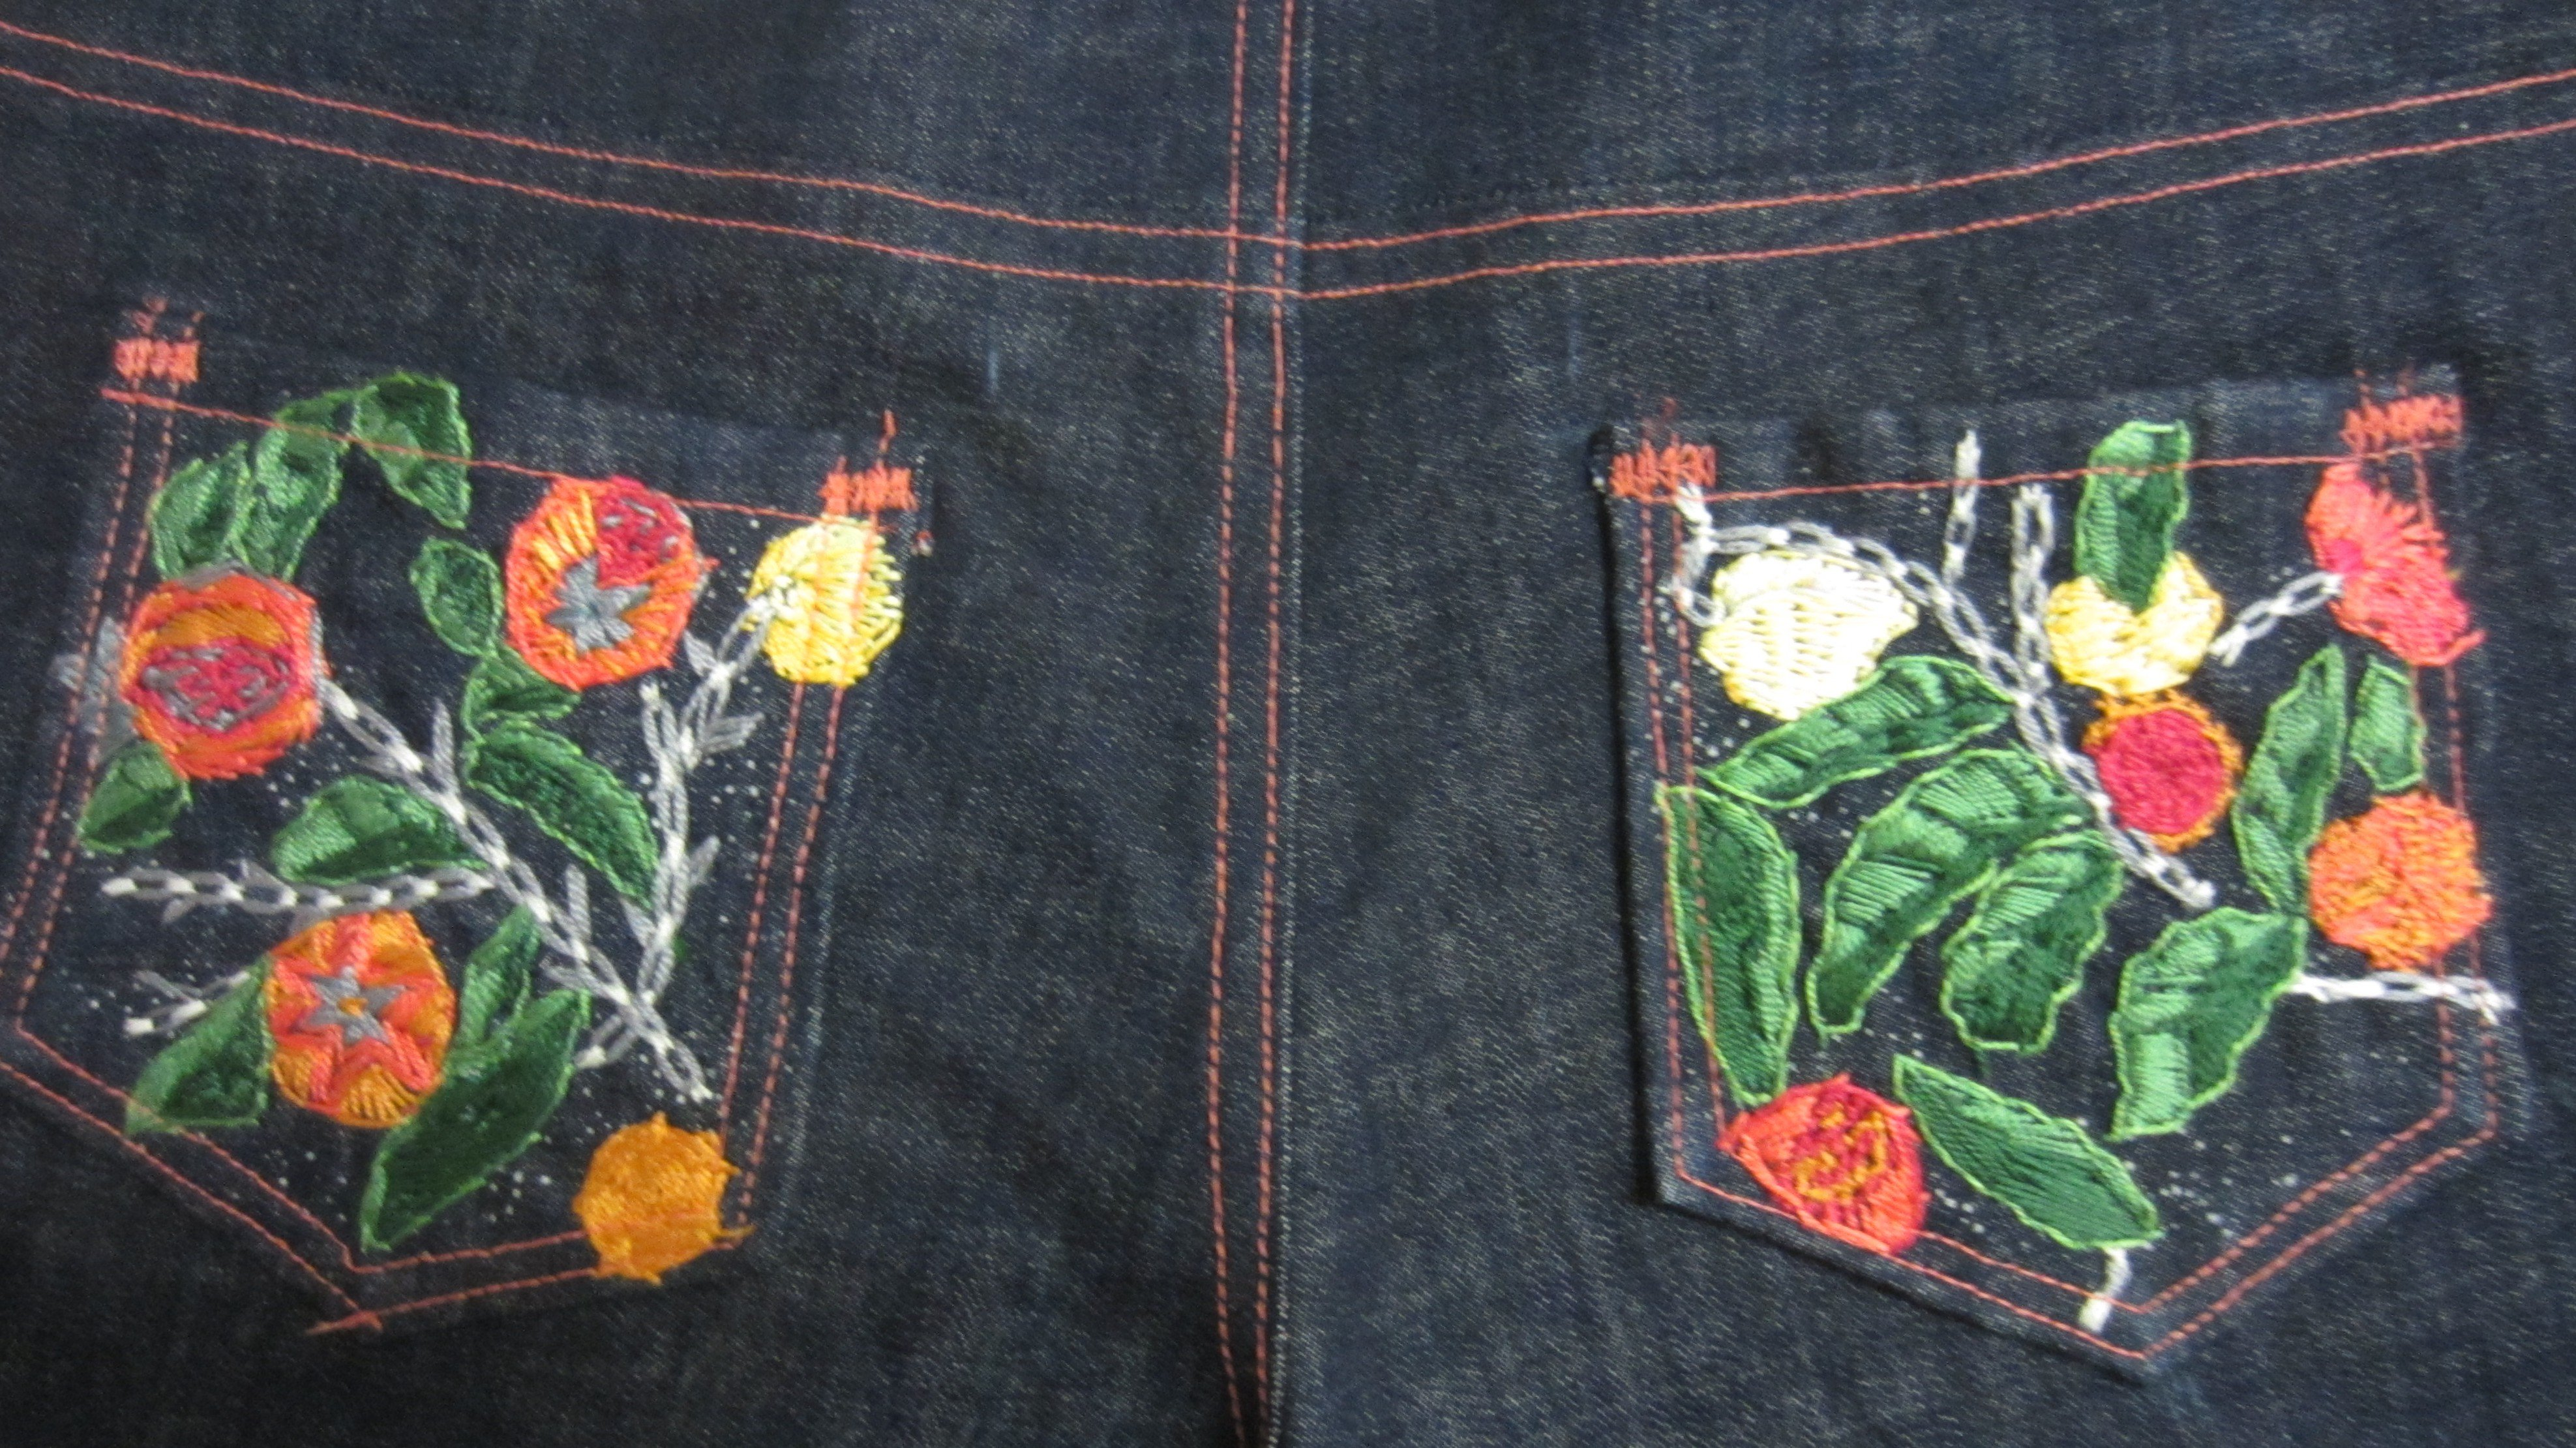 Back view of jeans, hand embroidered pockets, Sew Pomona